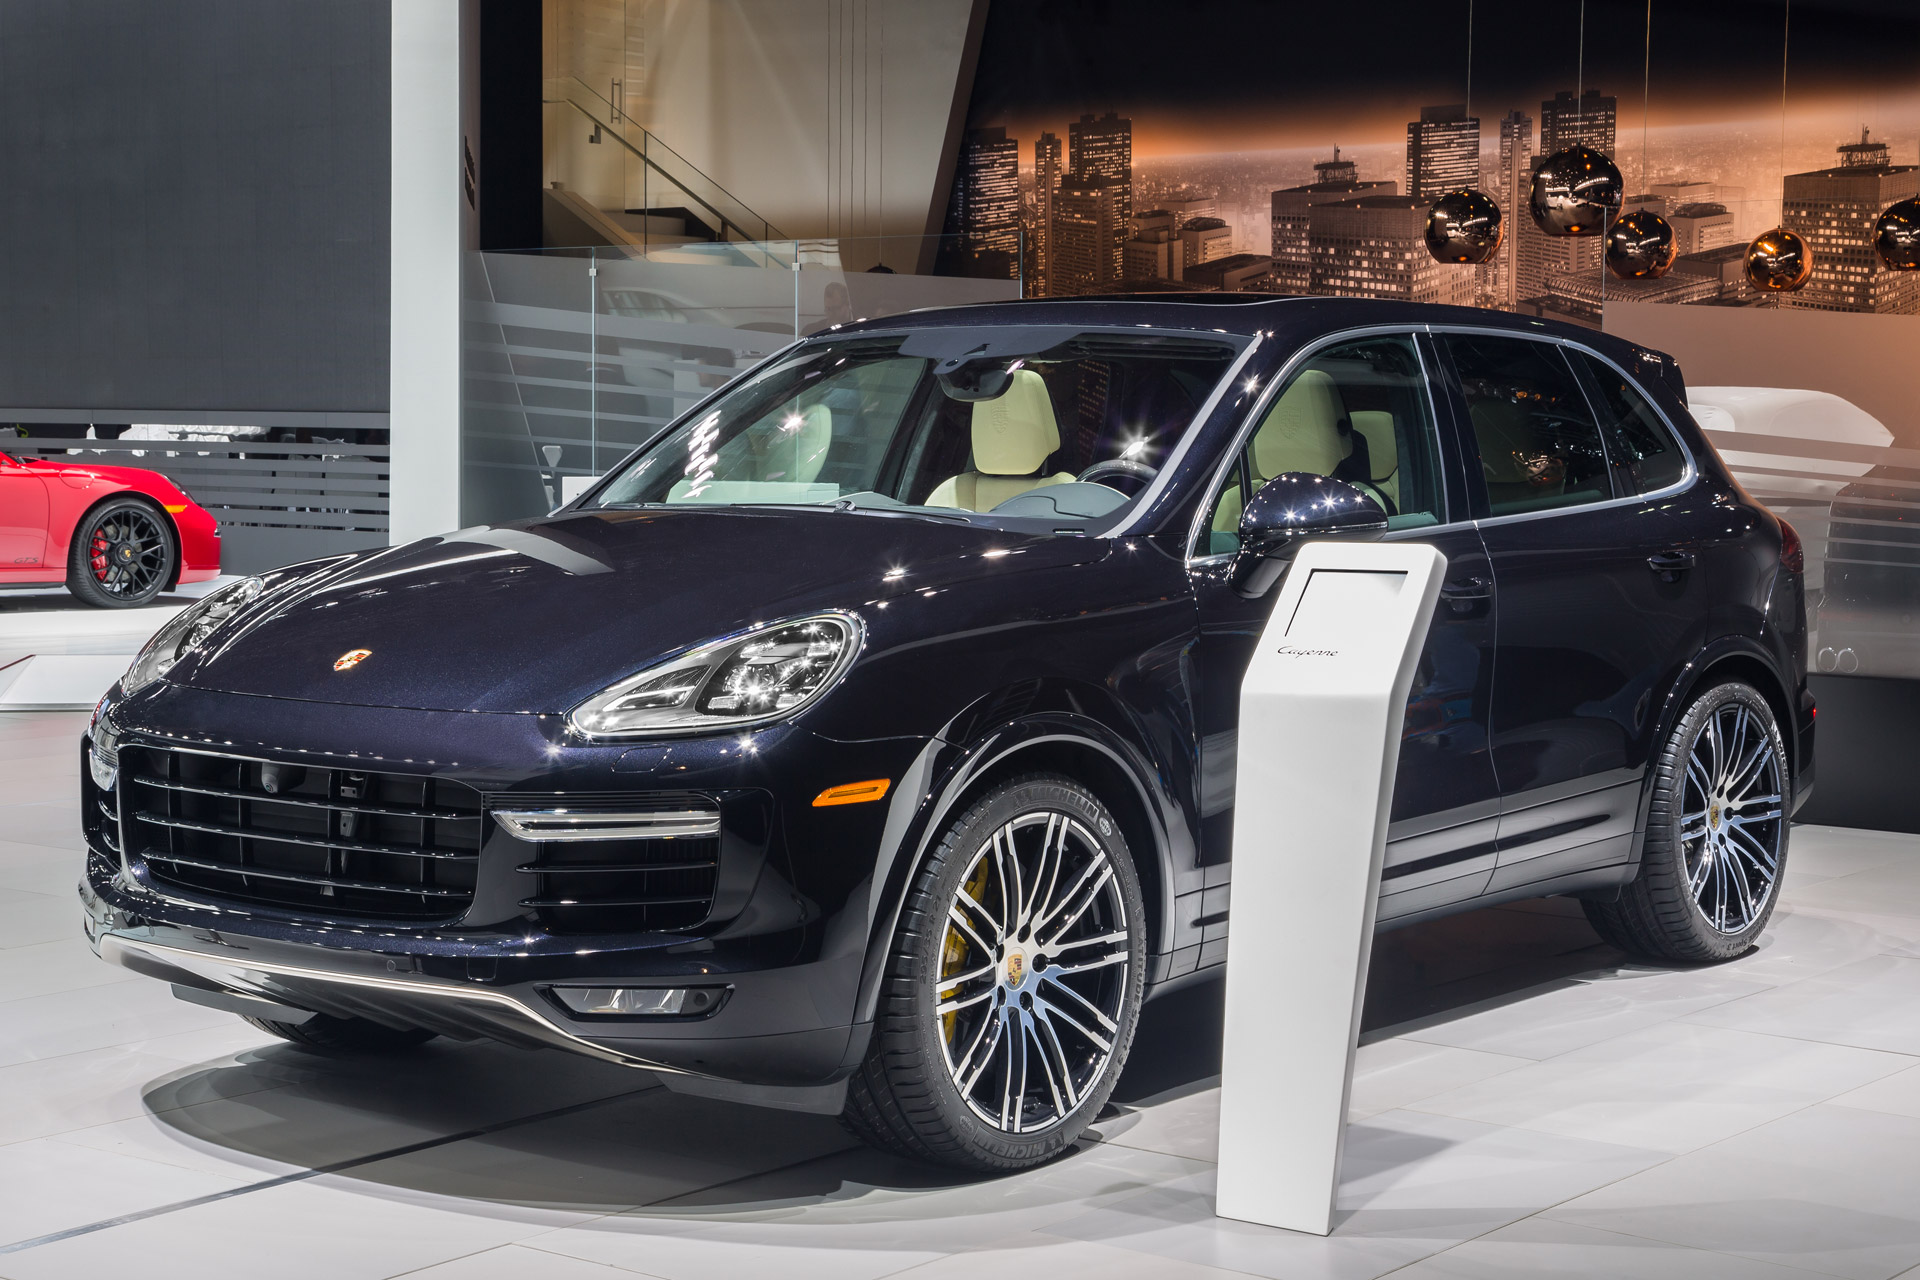 2016 Porsche Cayenne Turbo S 570 Hp And Sub 8 Minute